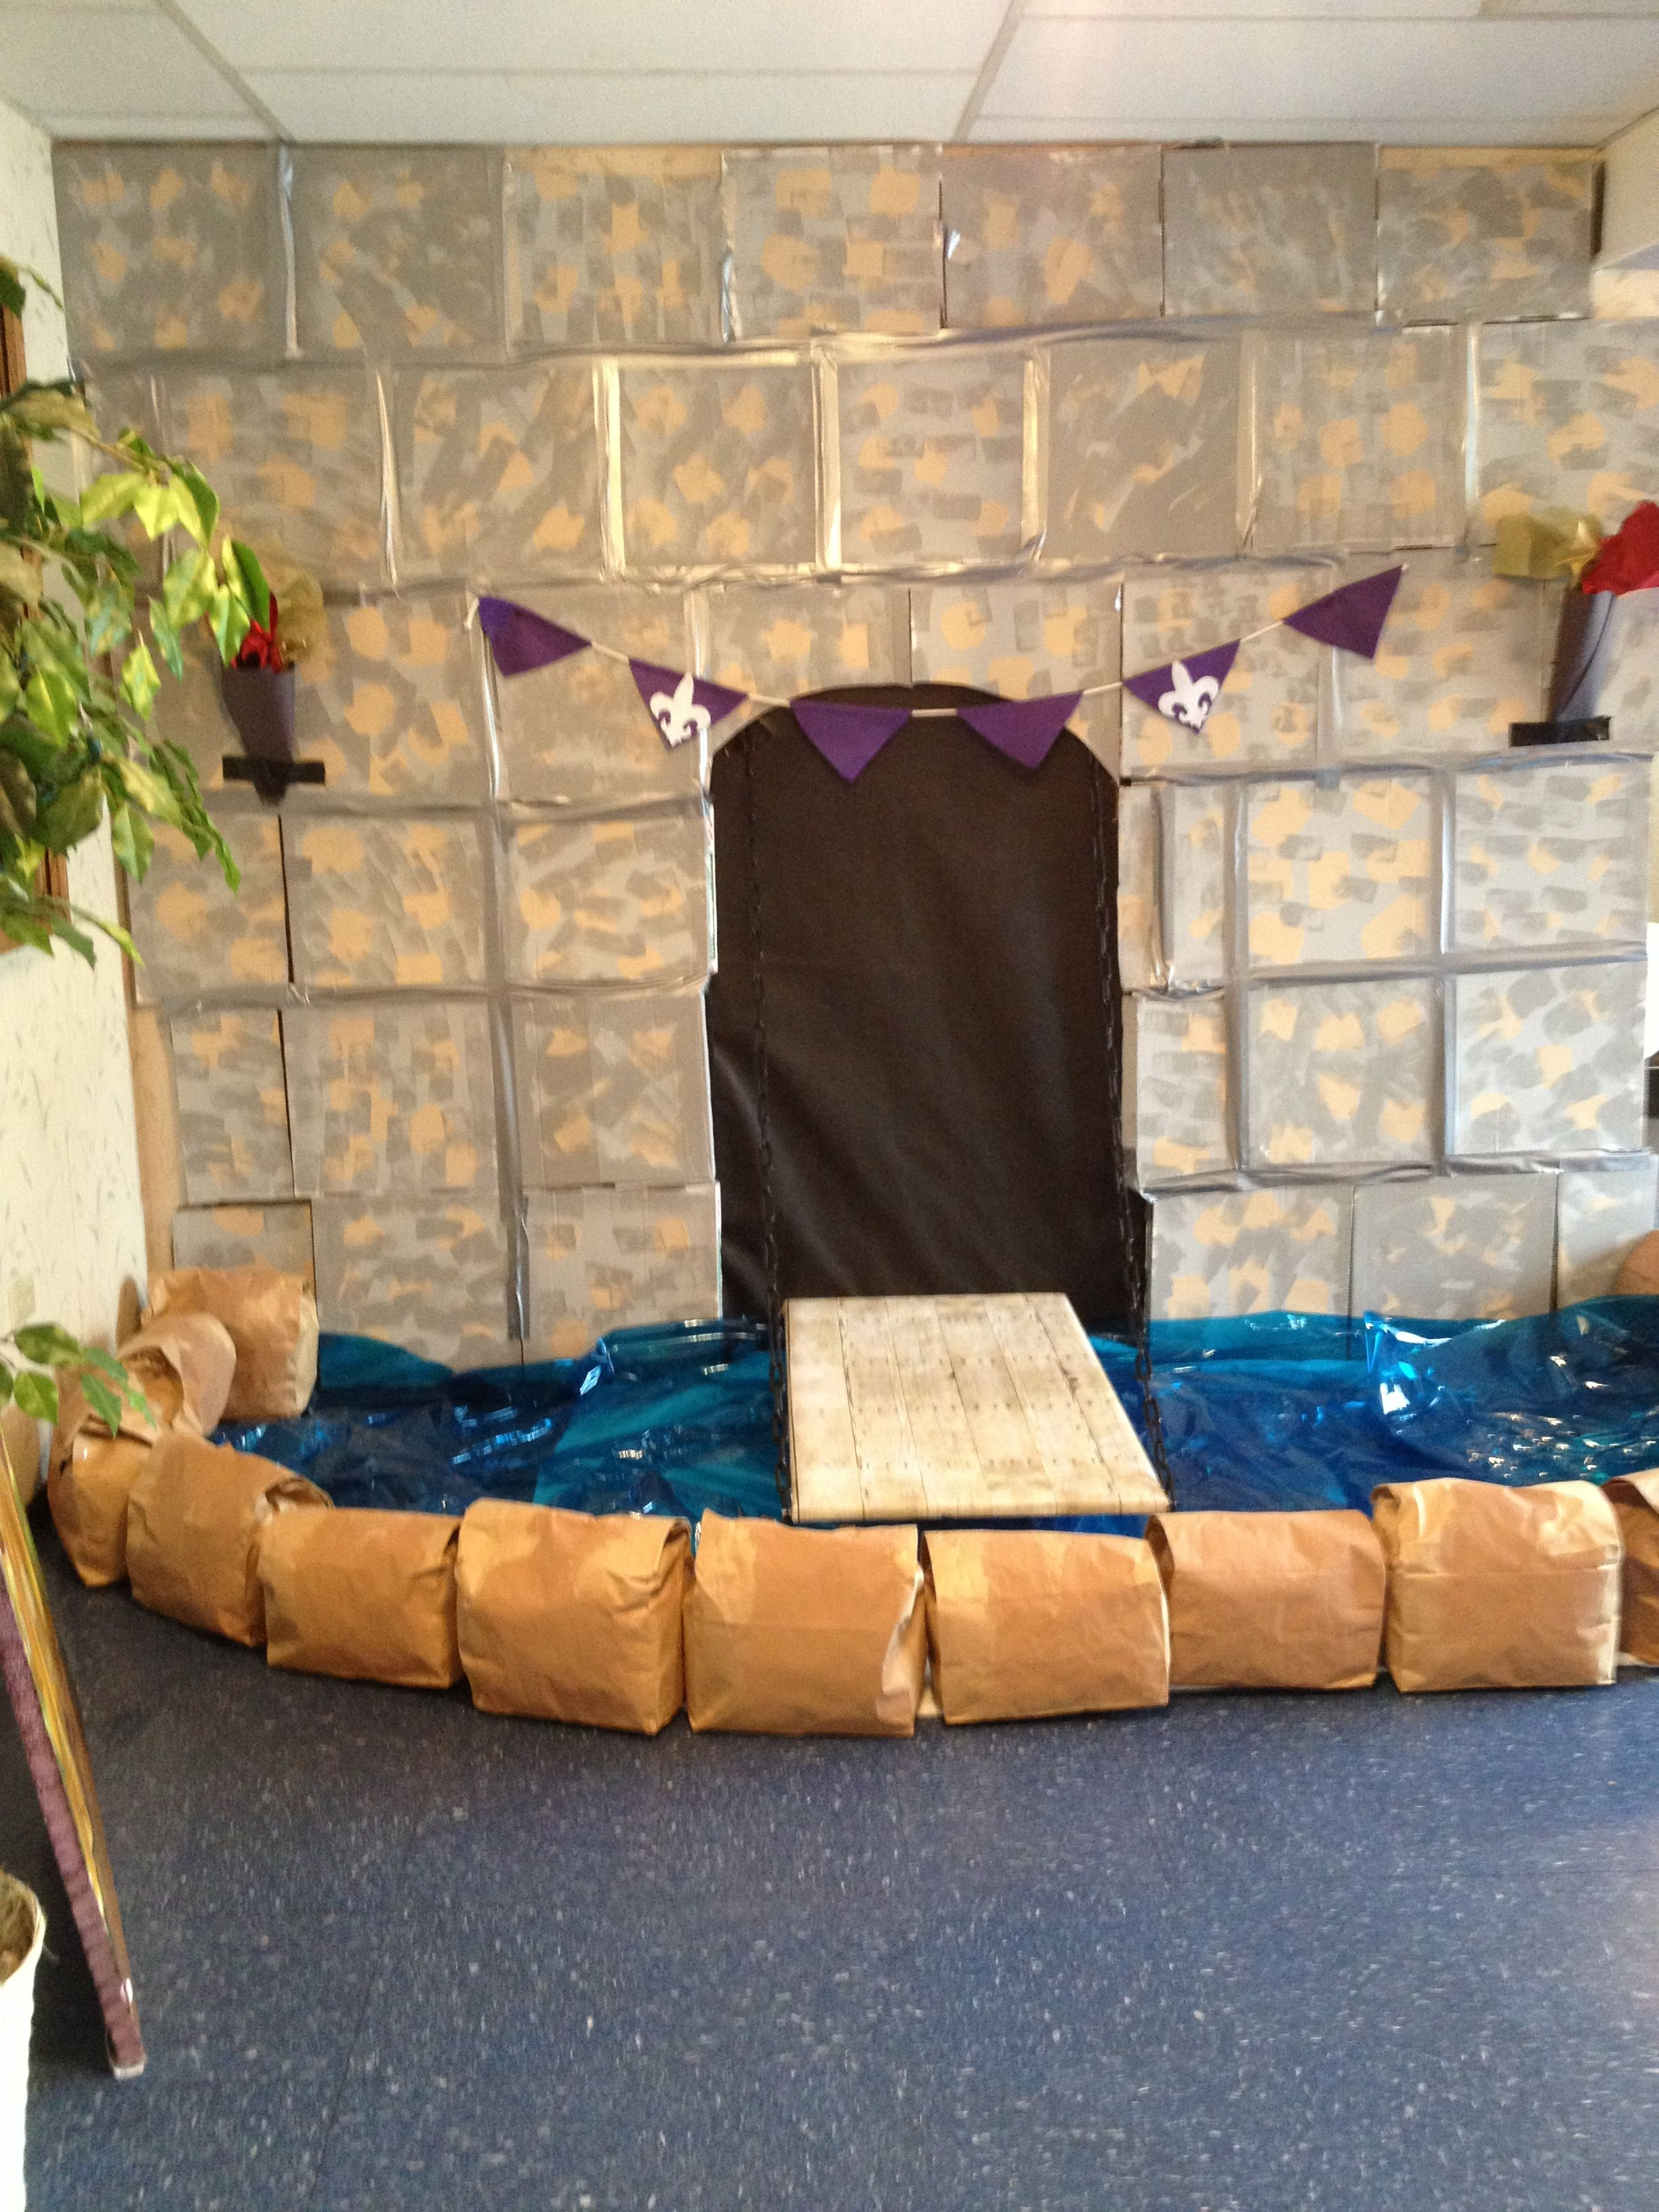 vbs decor. castle wall with moat. wall is made out of pizza boxes